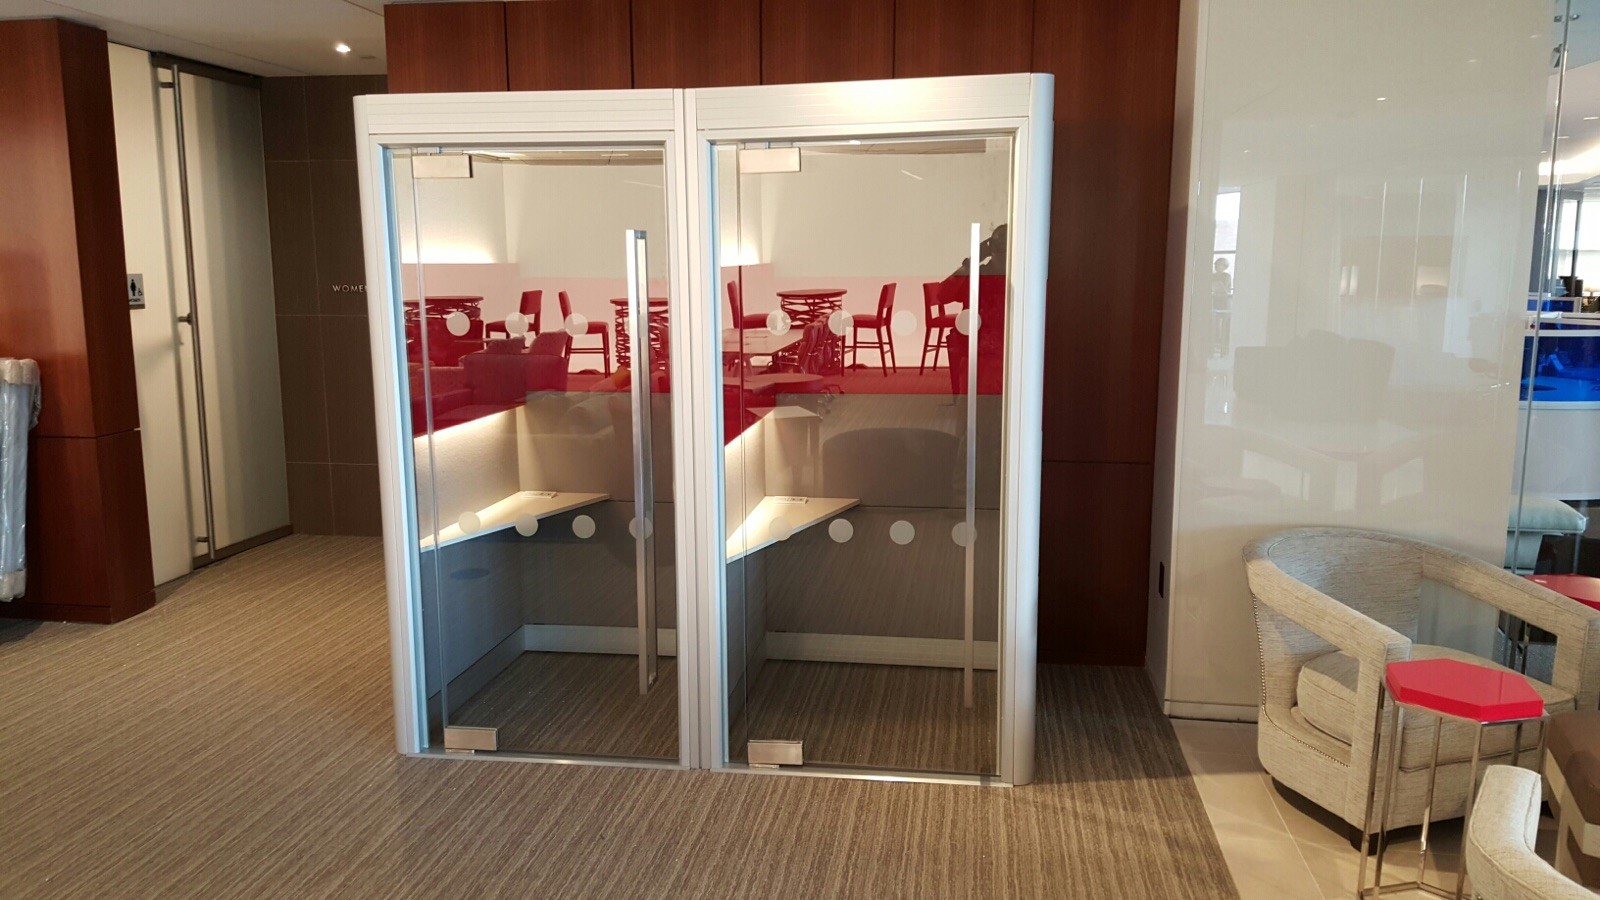 Spacio Phone Booths Freshly Installed In The Usa Apres